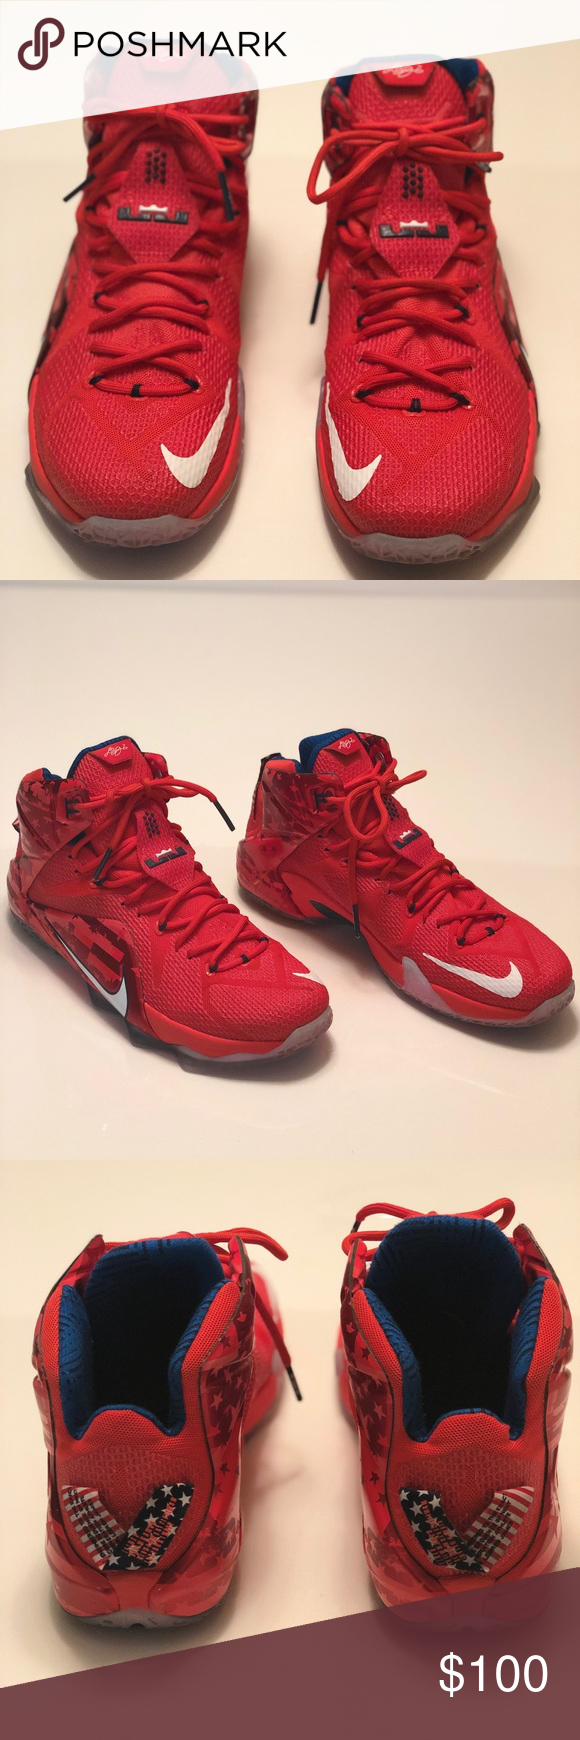 56dcc9ef4a355 Nike Lebron 12 Independence Day Limited Edition Celebrate the birth of our  nation with the Nike